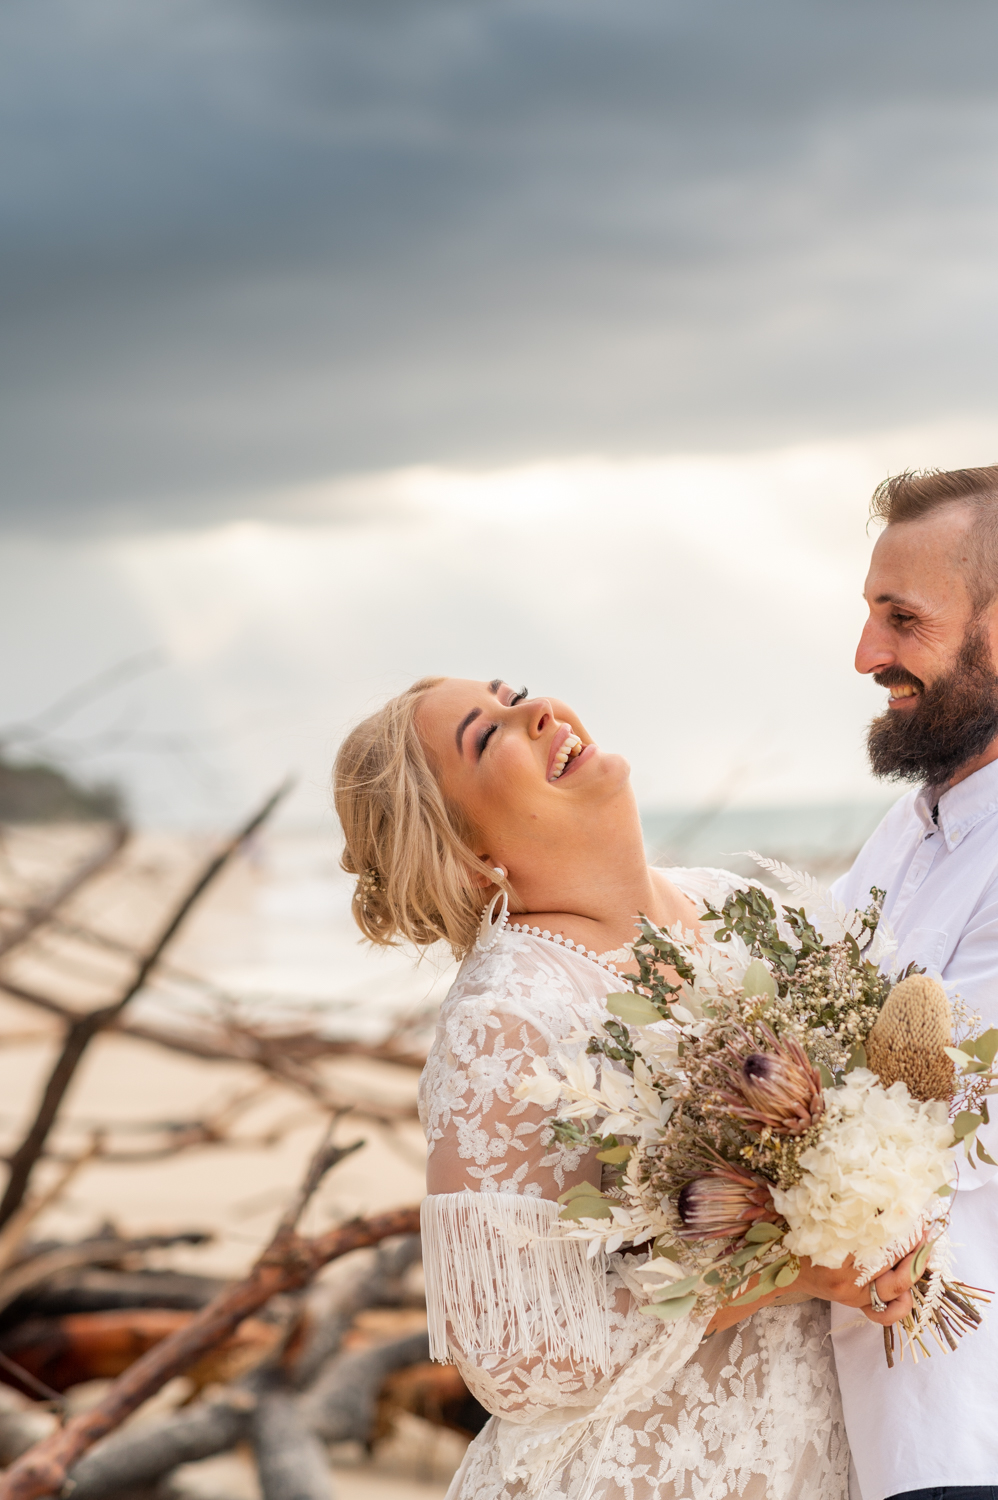 Kate and Ben | Amity Point intimate wedding | tipi on the beach | destination wedding